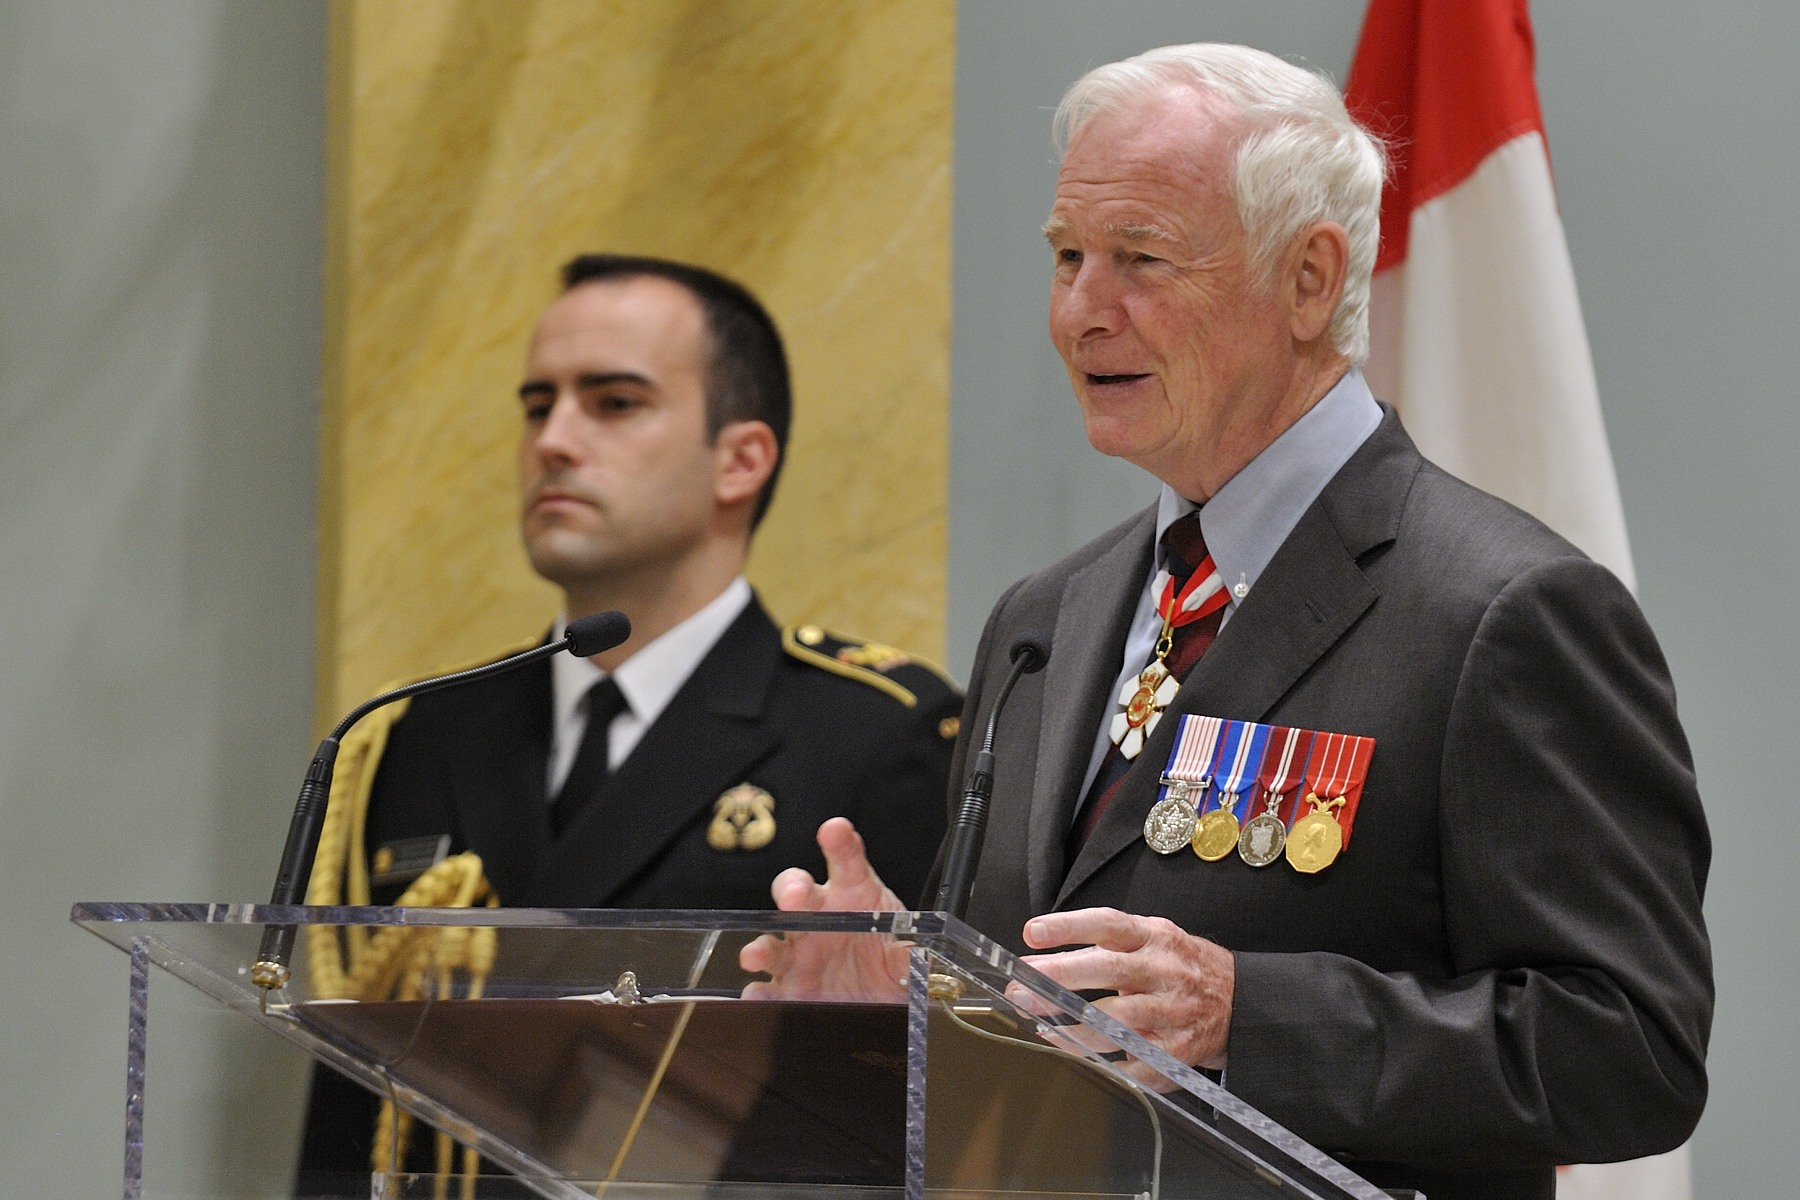 """Today, we honour some of the very best public servants,"" said His Excellency. ""You are here because your department recognized in you the effort, creativity and dedication to service that are indicative of the public service of today. And you are here not only as individuals, but also as representatives of your colleagues, whose own hard work cannot be overlooked."""